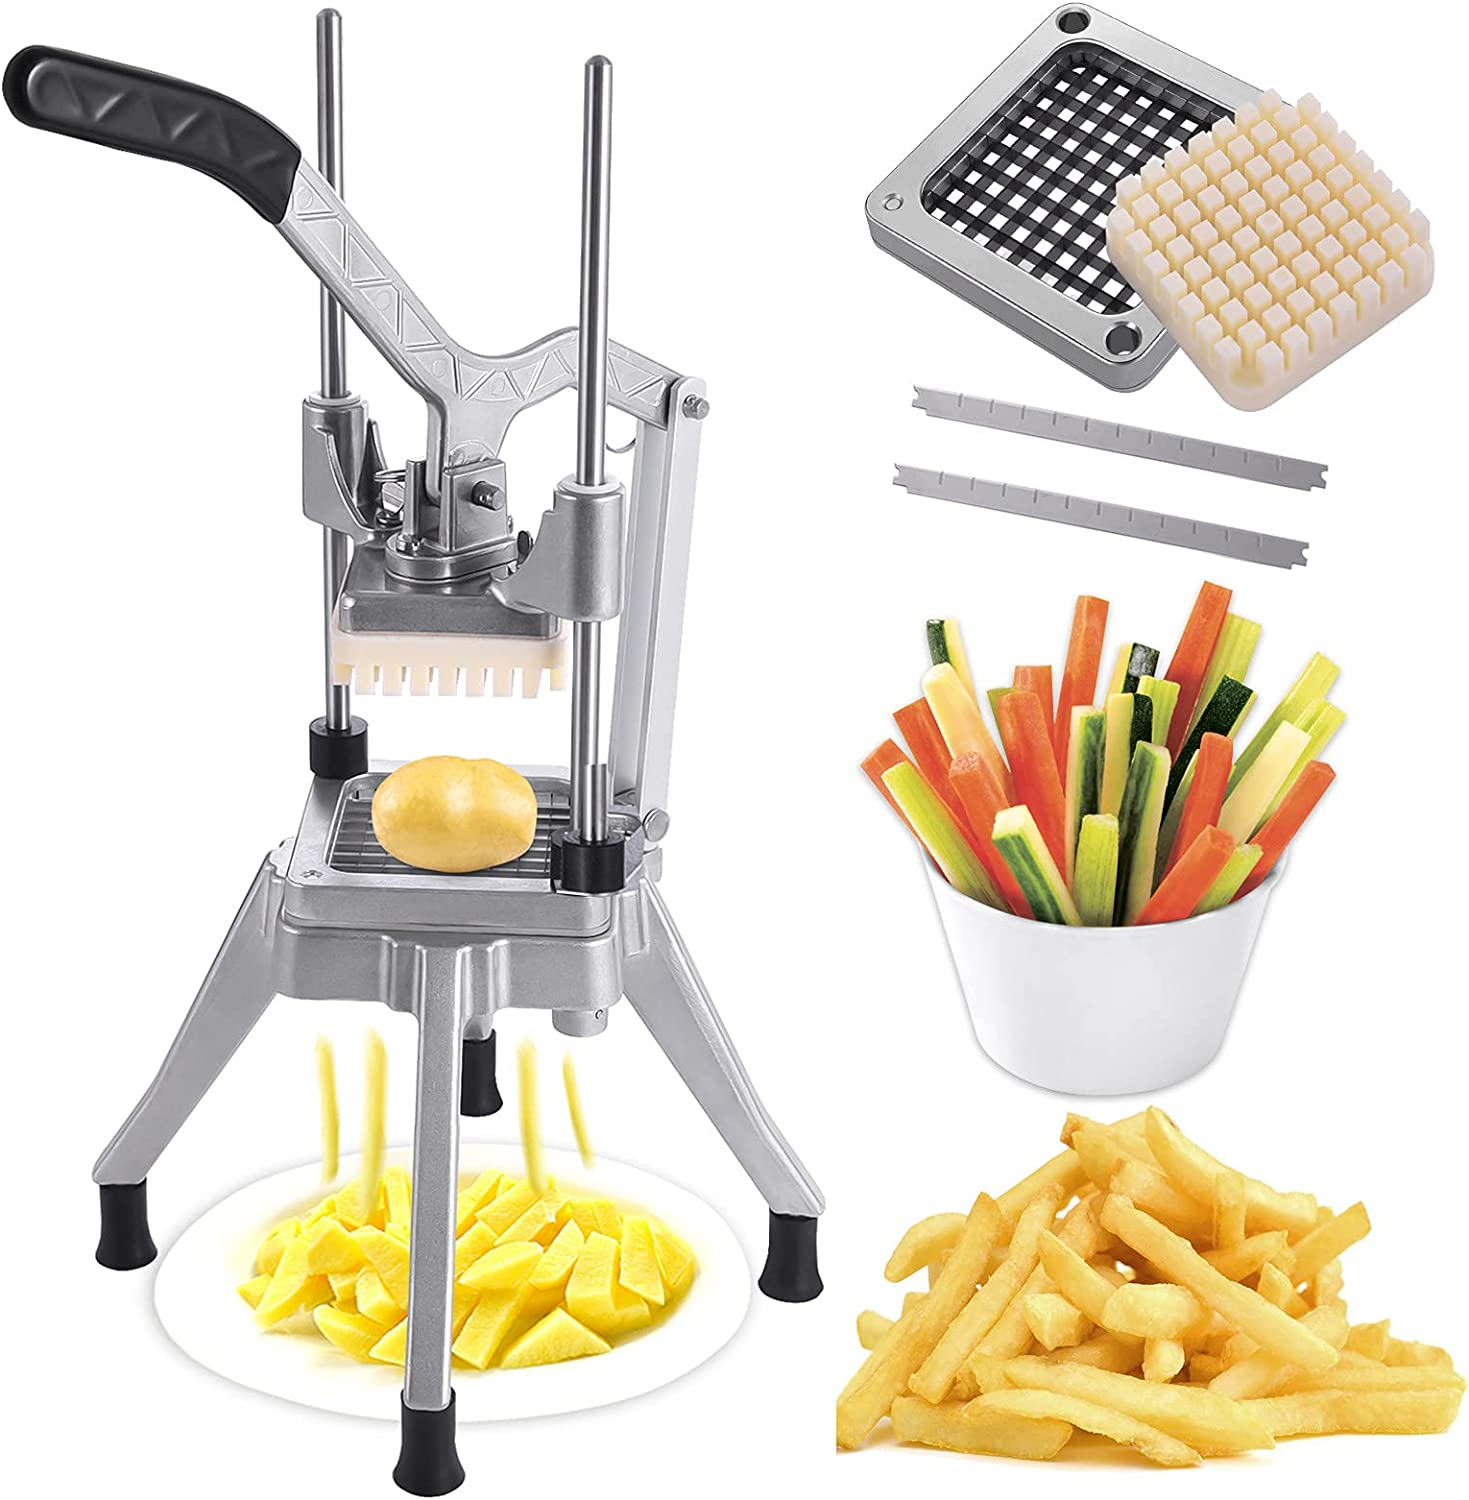 Commercial Vegetable Chopper 1/4″ Blade ,Vegetable Dicer Fry Cutter 1/4 Onion Tomato Slicer Professional Manual Food Chopper For Potato Fruit Stainless Steel Home Kitchen